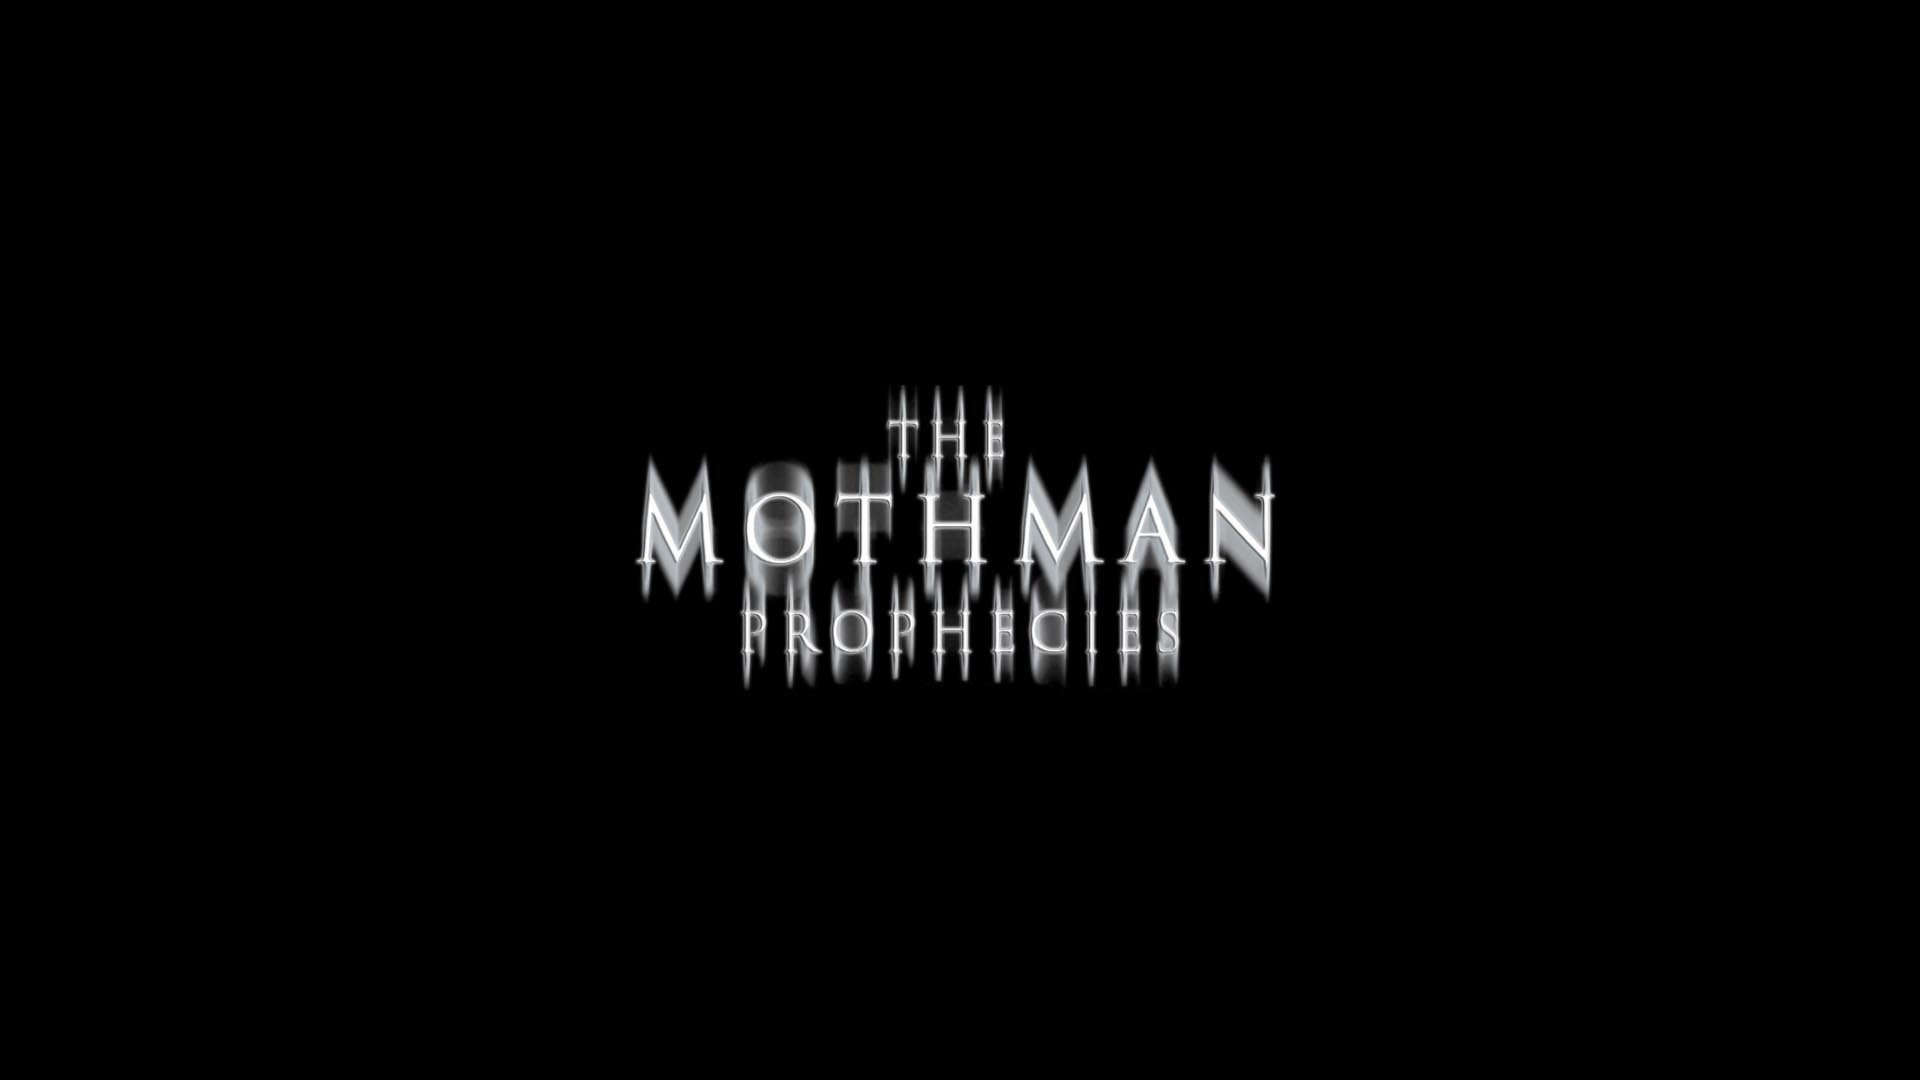 the mothman prophecies full hd wallpaper and background